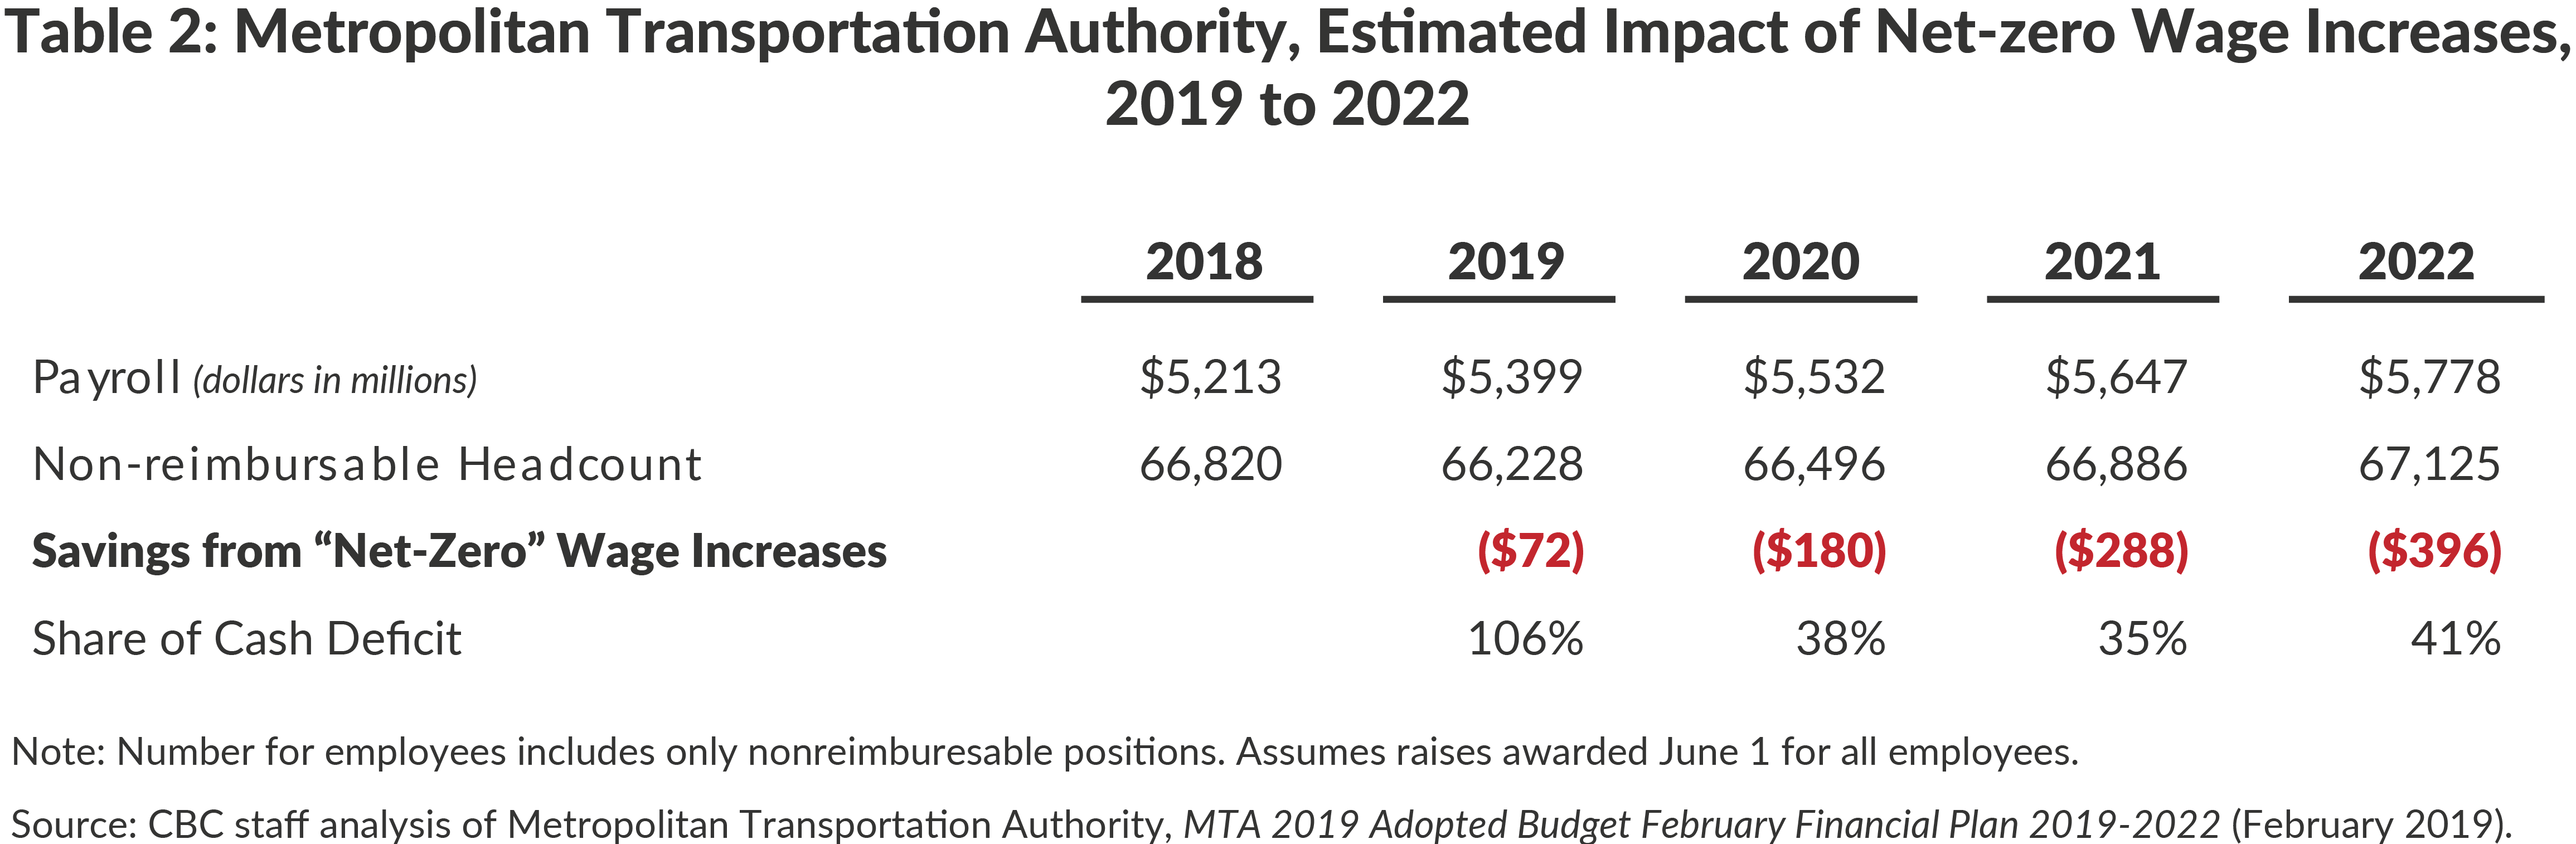 Table 2: Metropolitan Transportation Authority, Estimated Impact of Net-zero Wage Increases, 2019 to 2022 (dollars in millions)